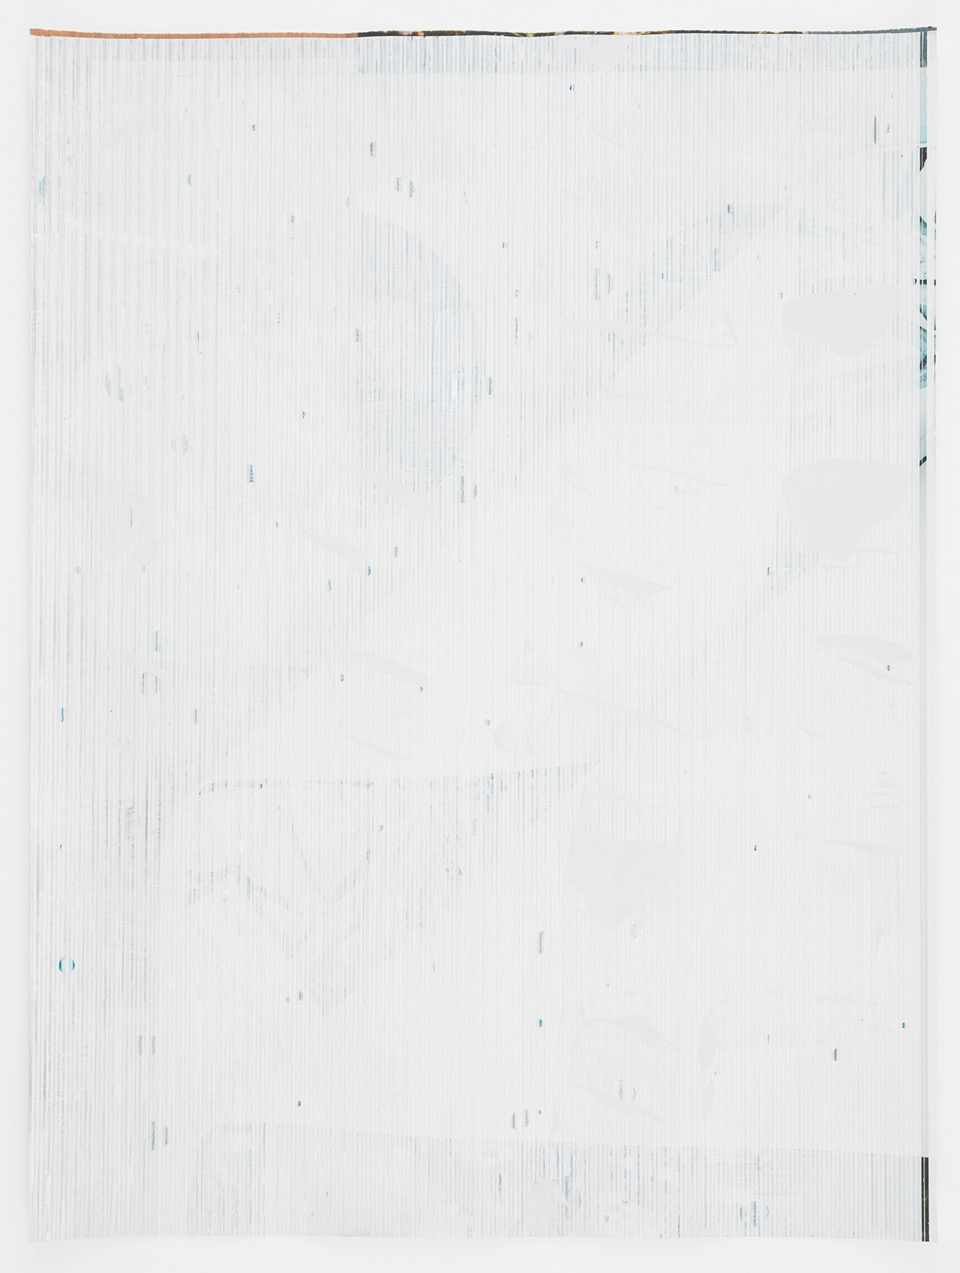 Untitled Composite, 2016  Oil and UV cured ink on paper  34 x 25-1/2 inches  86.4 x 64.8 cm